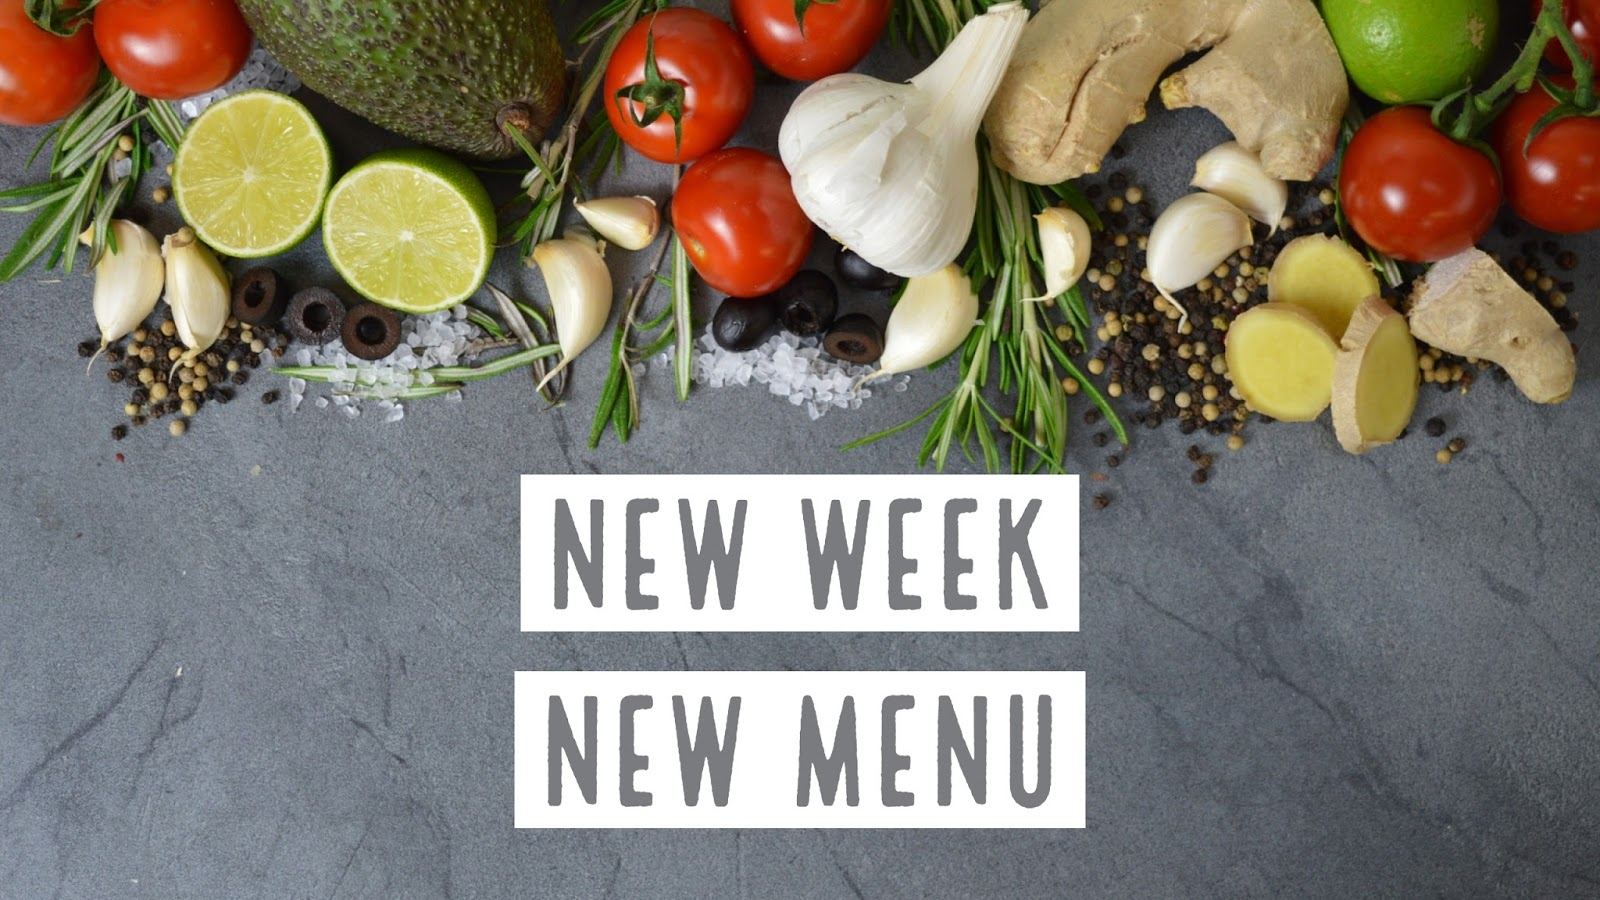 New Week New Menu